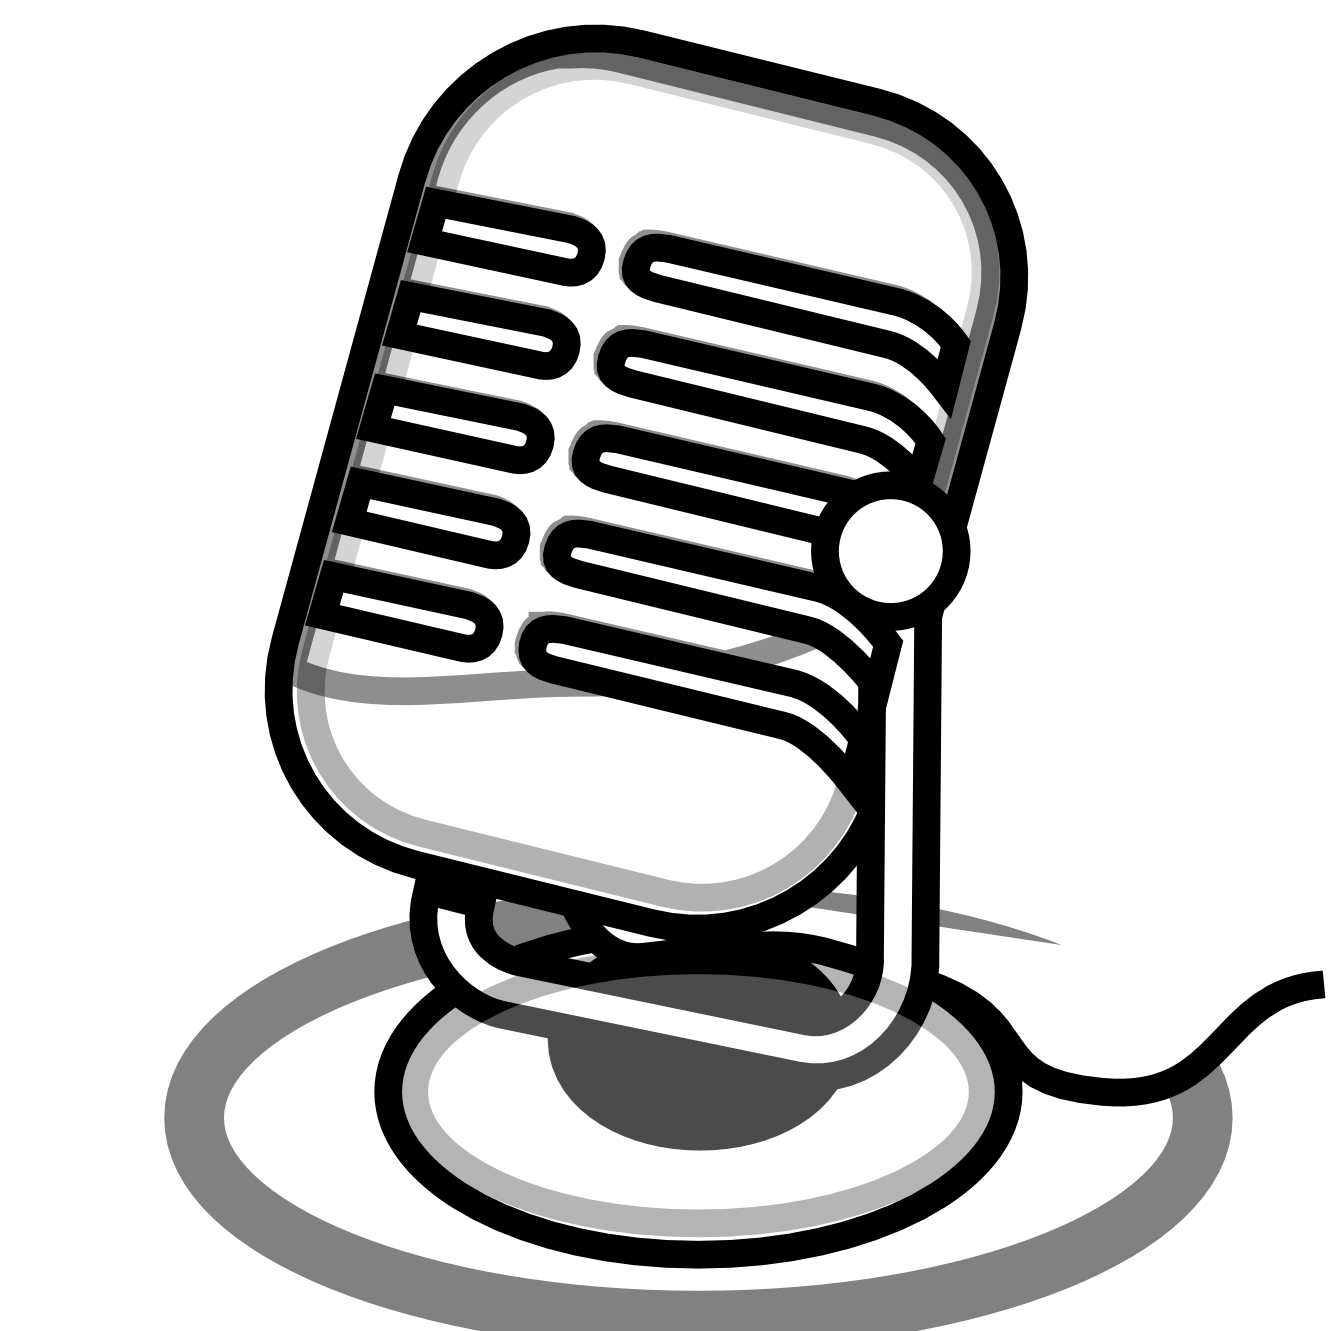 Transparent mic coloring page. Collection of microphone